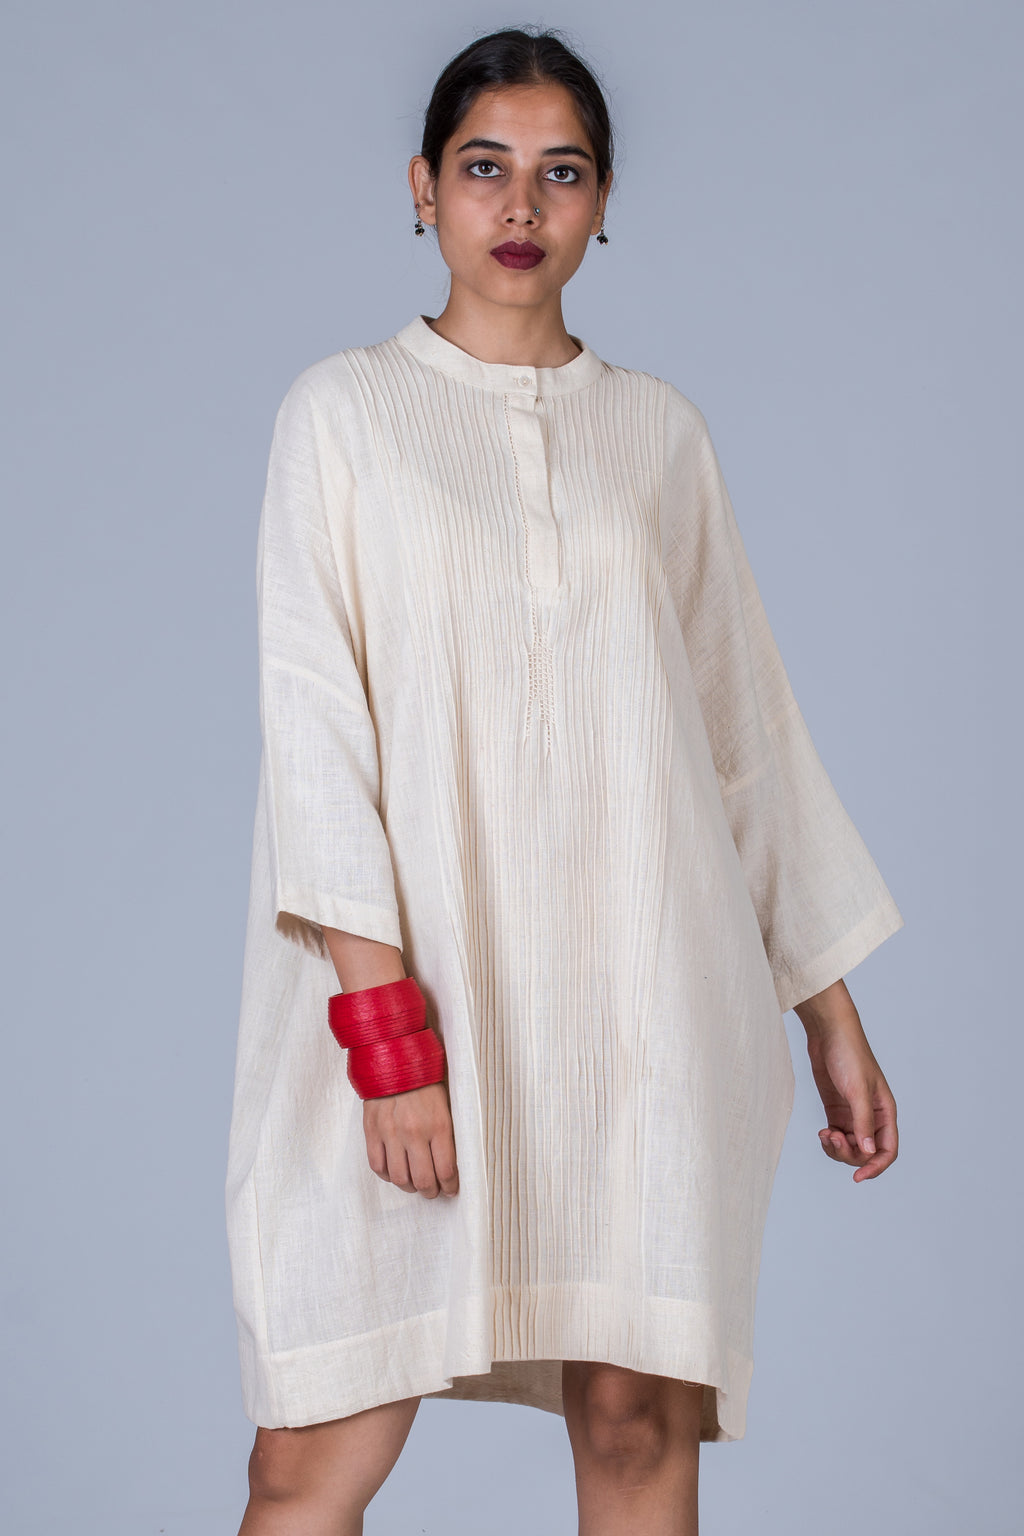 Offwhite Khadi Pintuck Dress - MUKTA